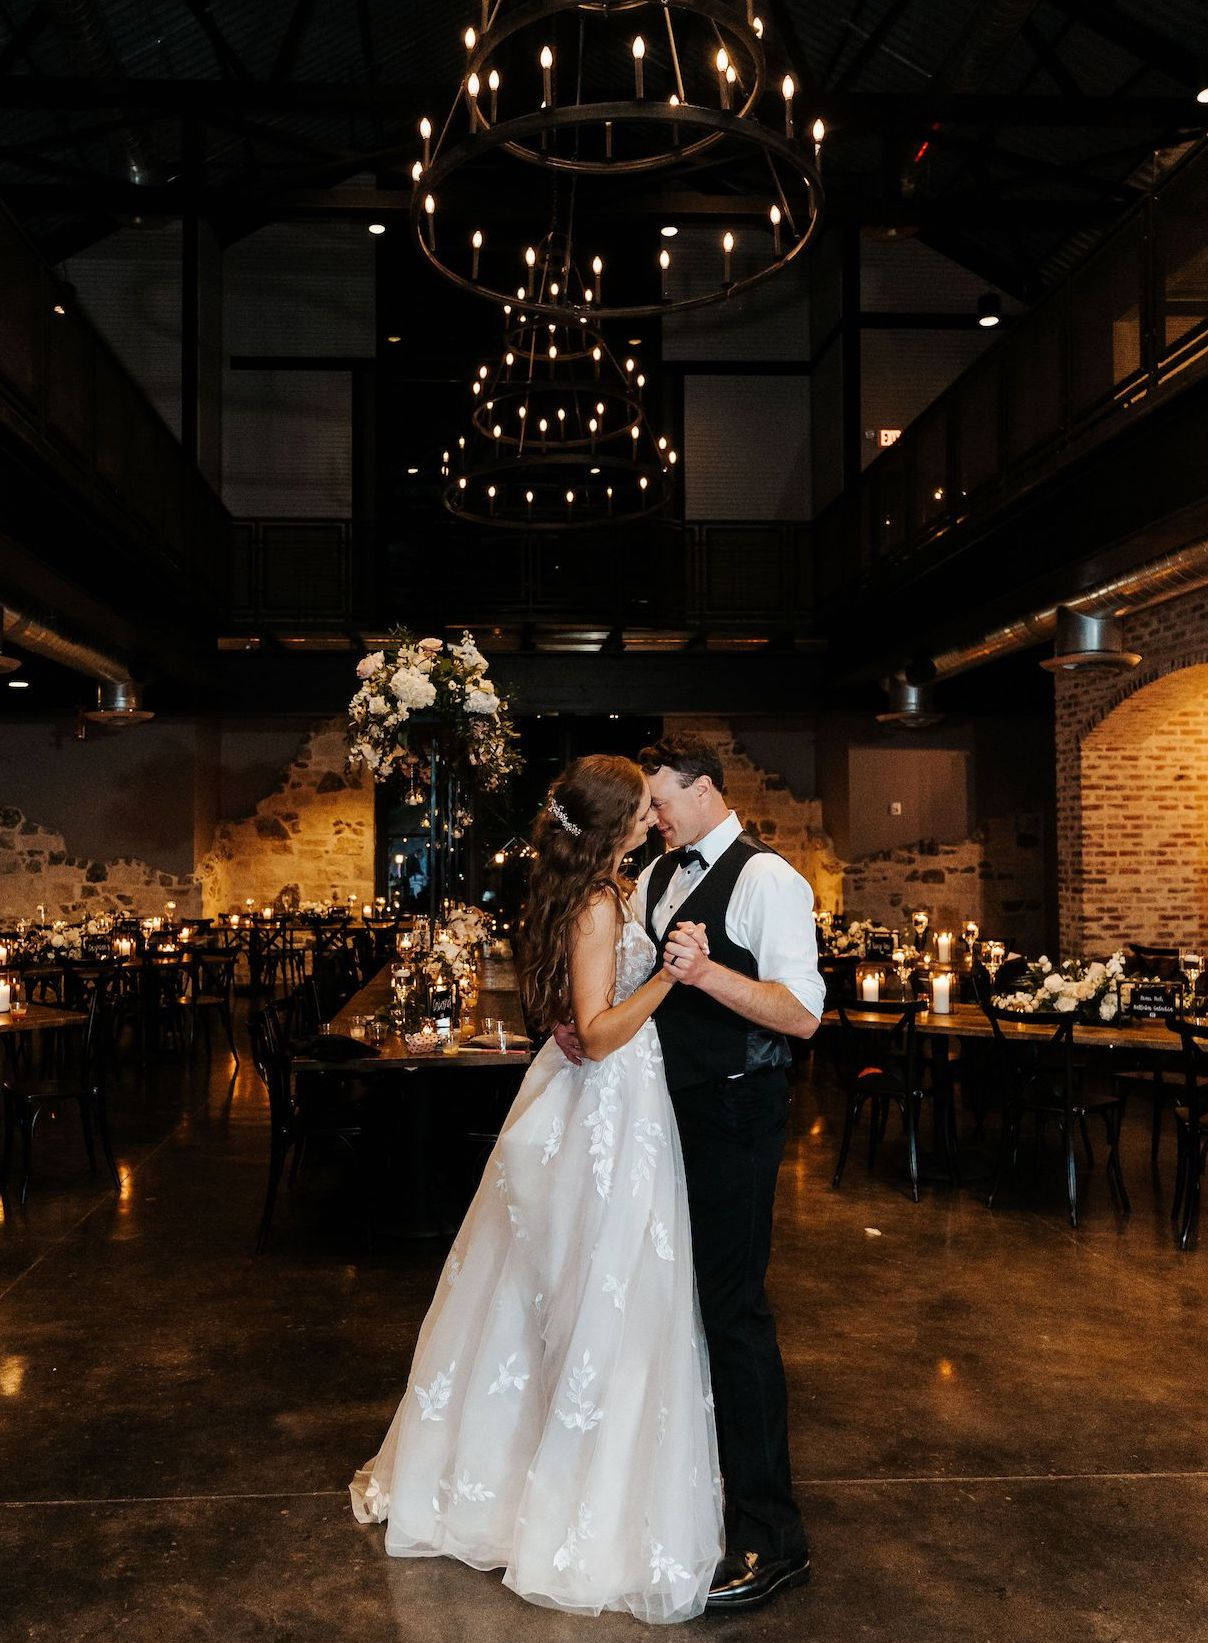 A beautiful couple shares a last dance in their empty reception venue, illuminated by candlelight and soft light from iron chandeliers.